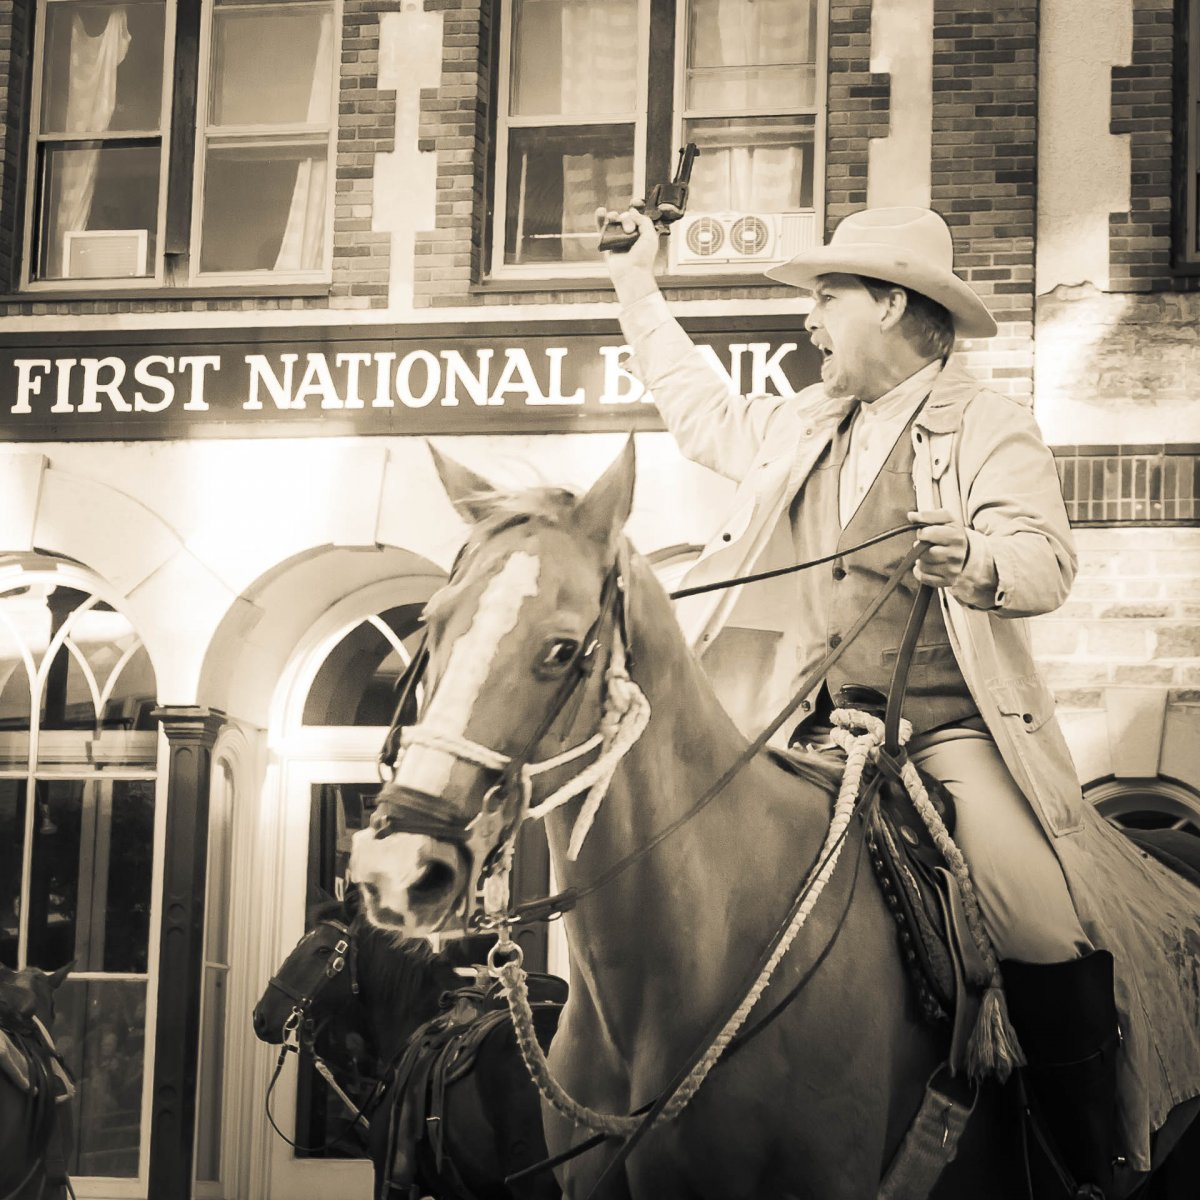 First National Bank Robbery